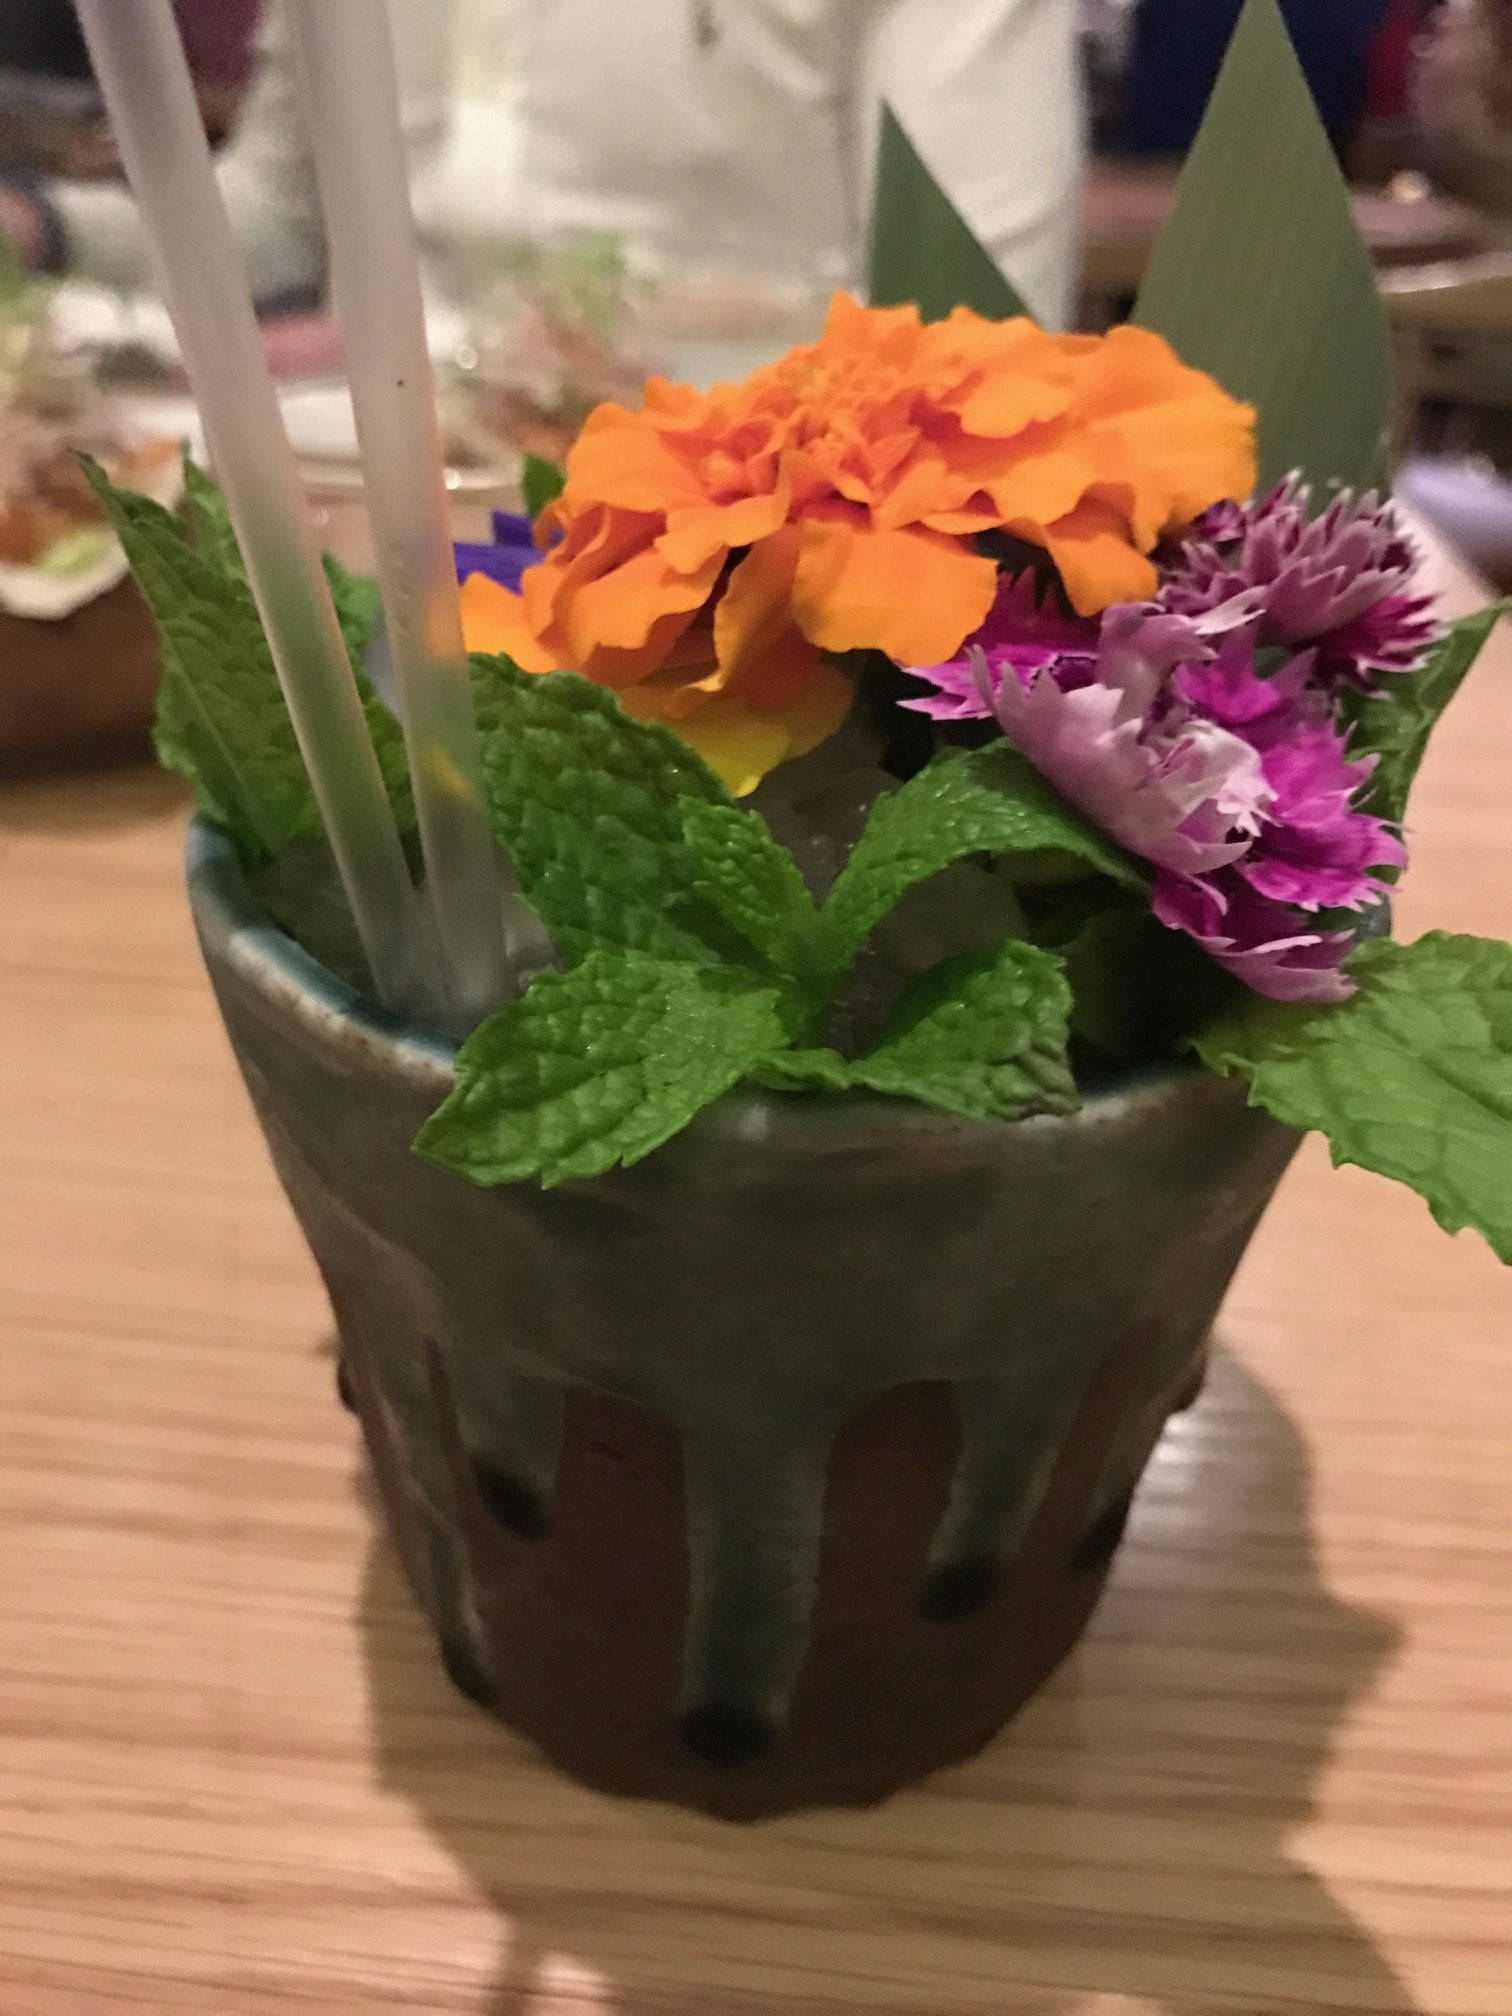 Floral Cockail from Masu Japanese restaurant Auckland